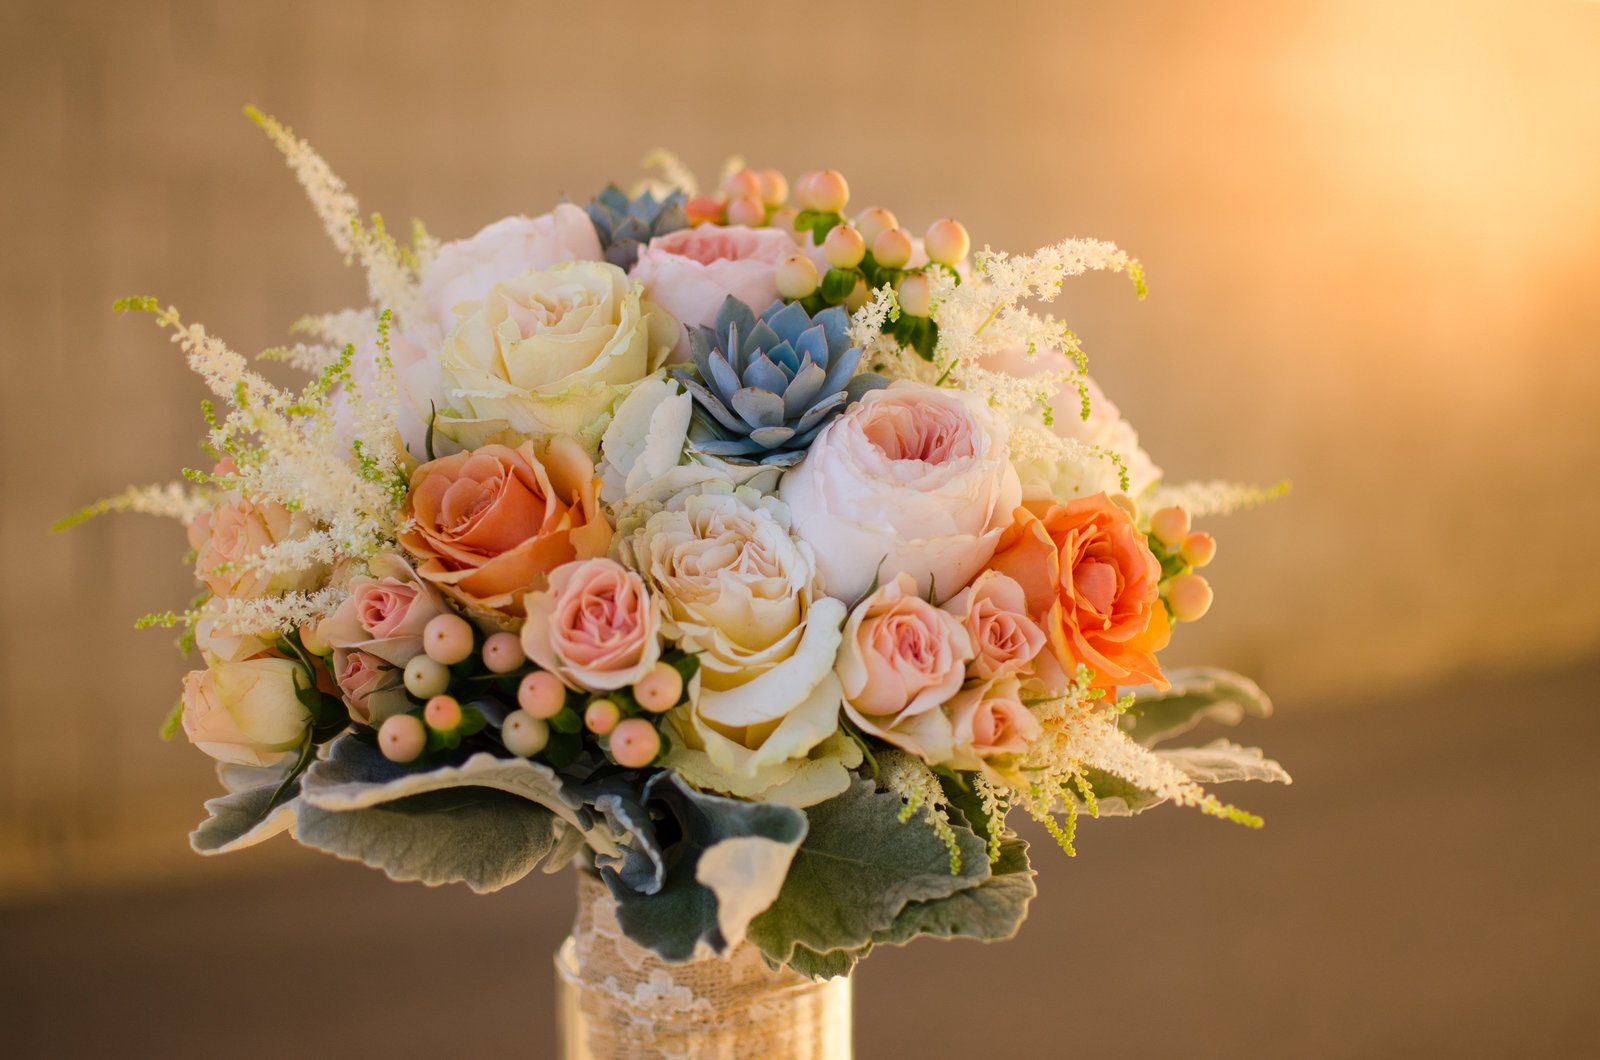 Premier wedding florist specializing in creative  and unique floral designs. Serving Gilbert, Mesa, Chandler, Gold Canyon, Tempe, Phoenix and the surrounding area.